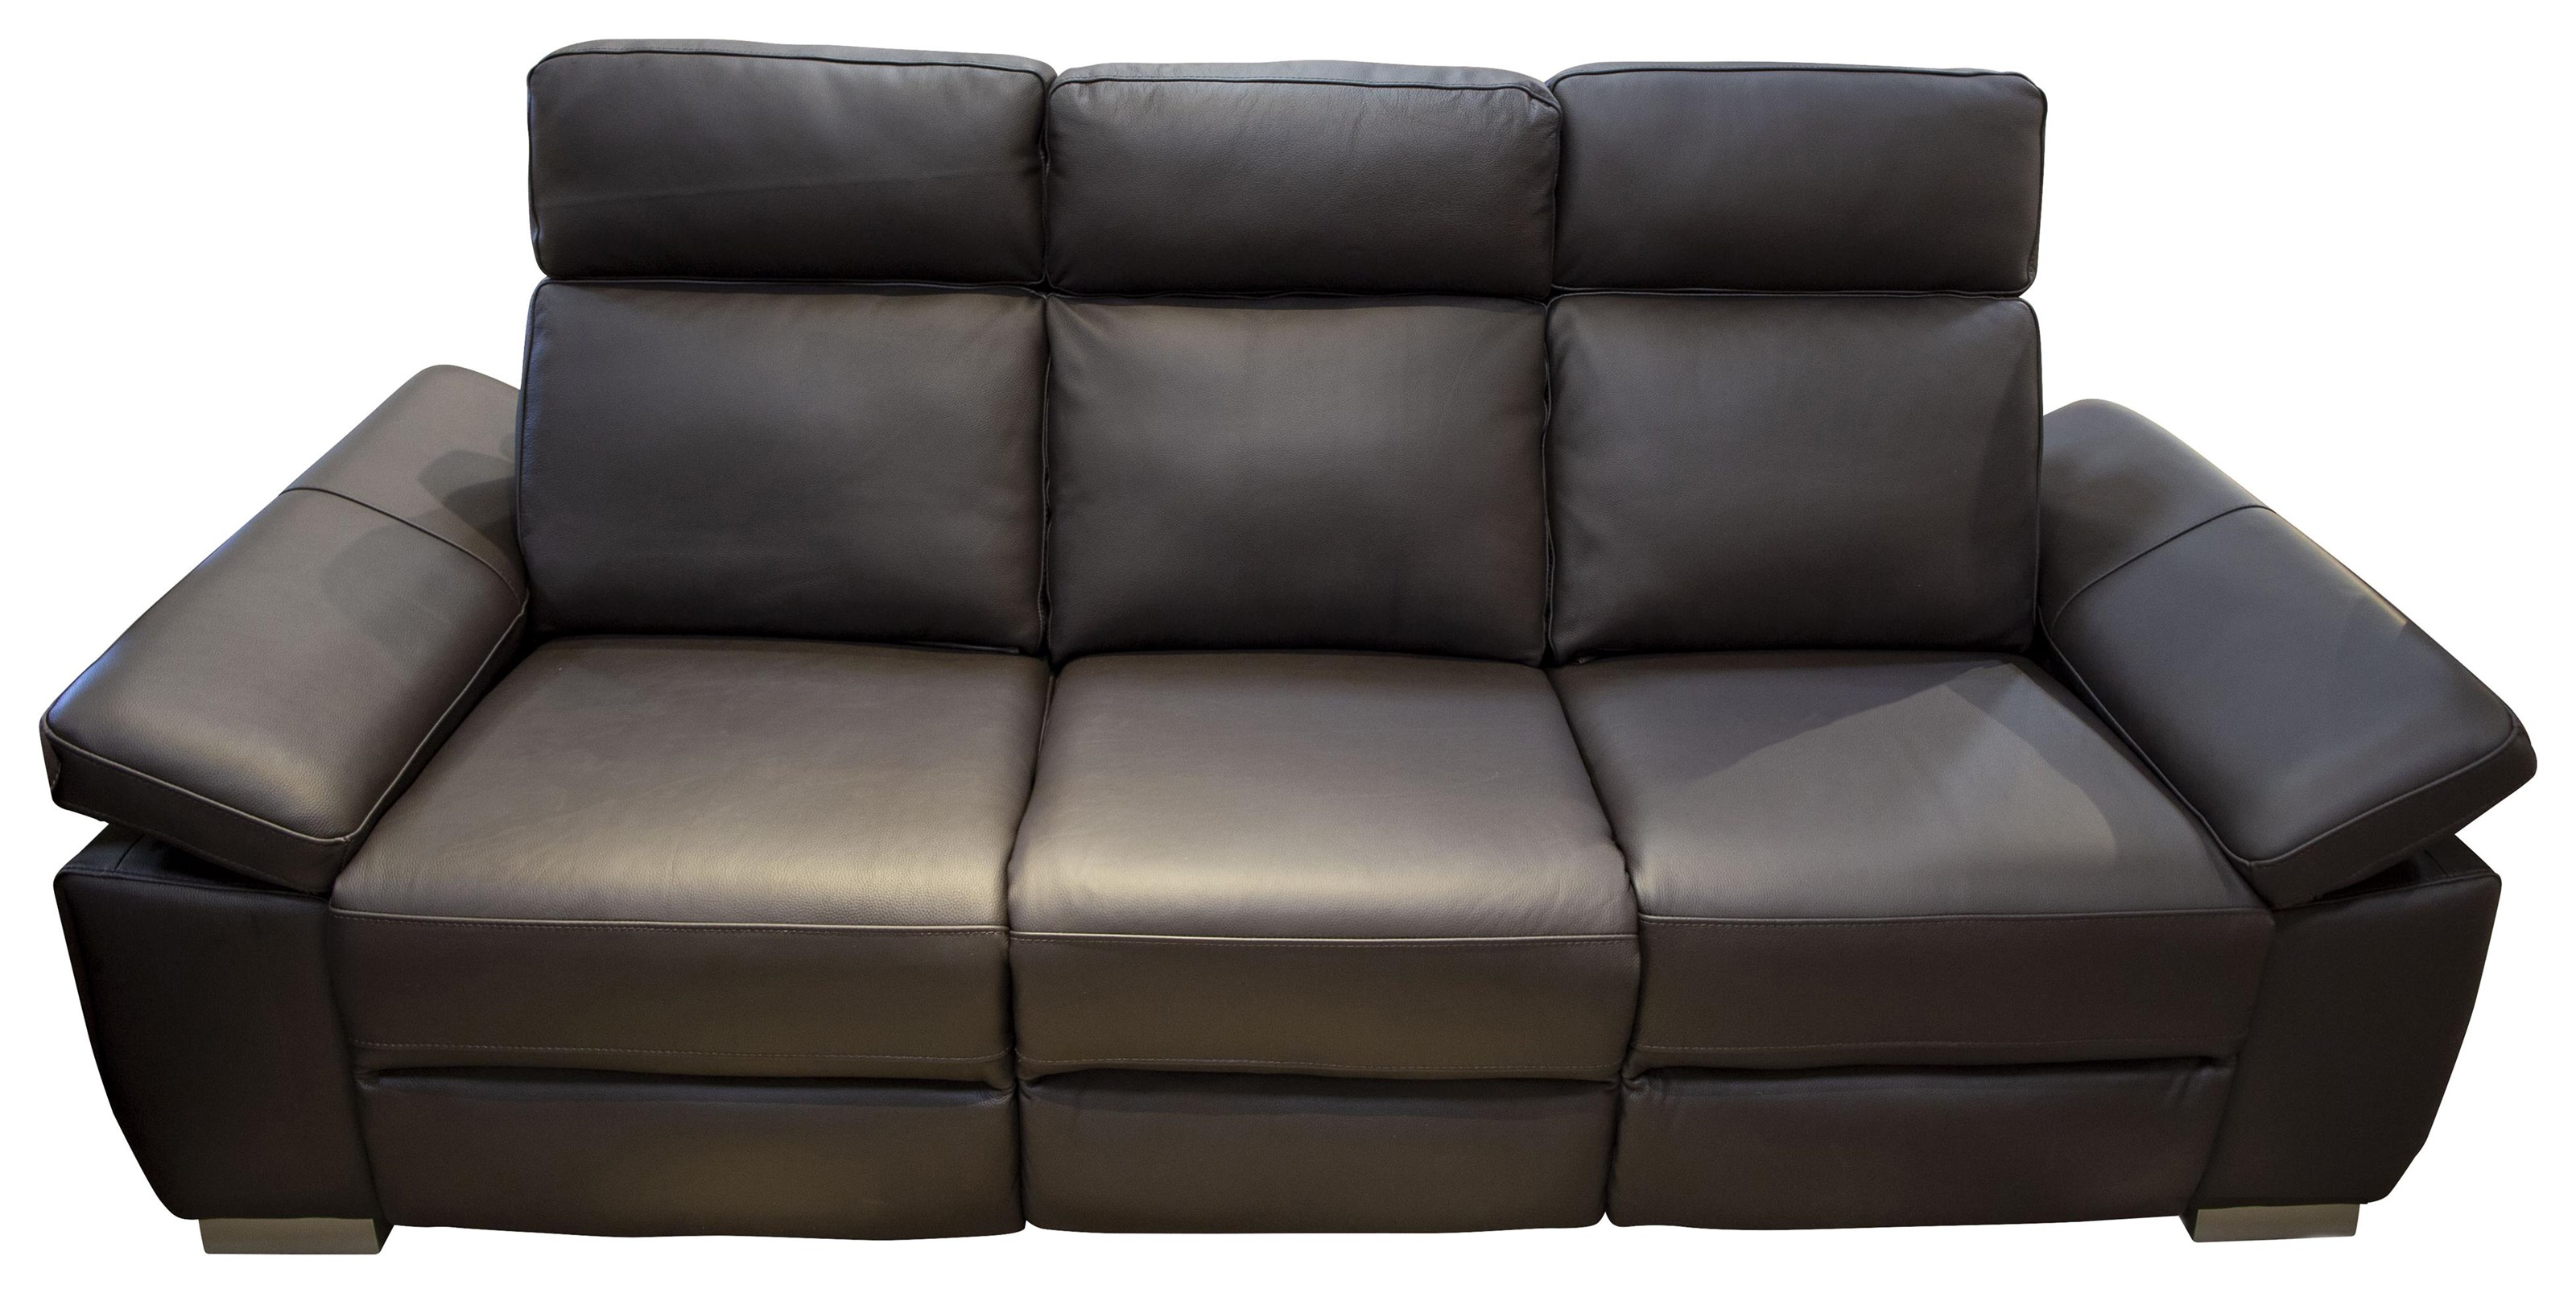 Jove Jove Power Leather Sofa by Abbyson at Morris Home